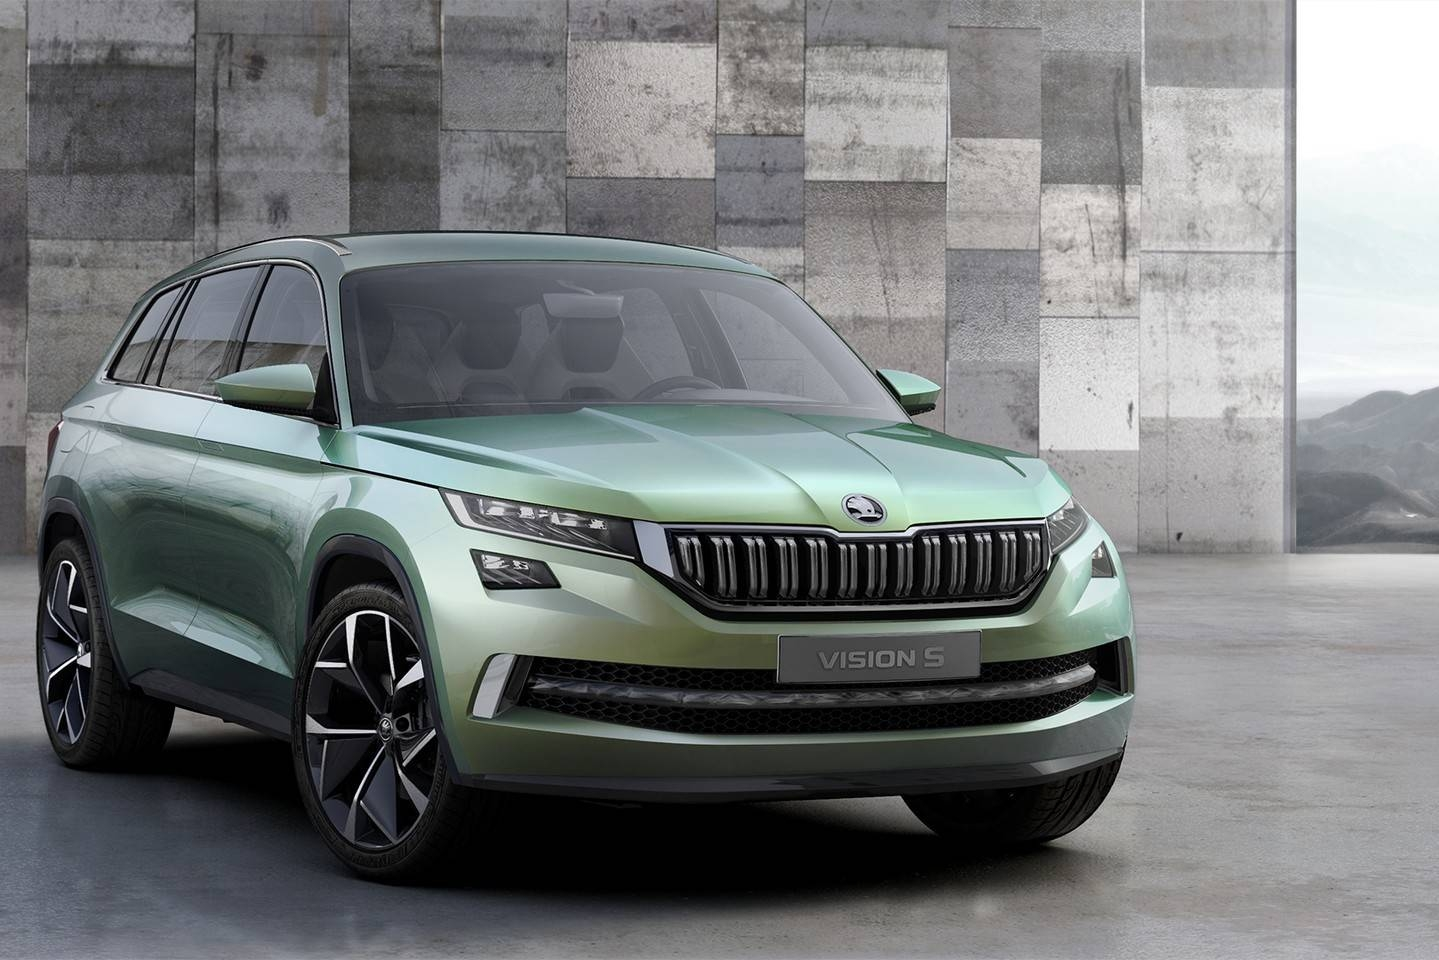 salon de gen ve 2016 skoda visions concept le futur suv sept places tch que. Black Bedroom Furniture Sets. Home Design Ideas